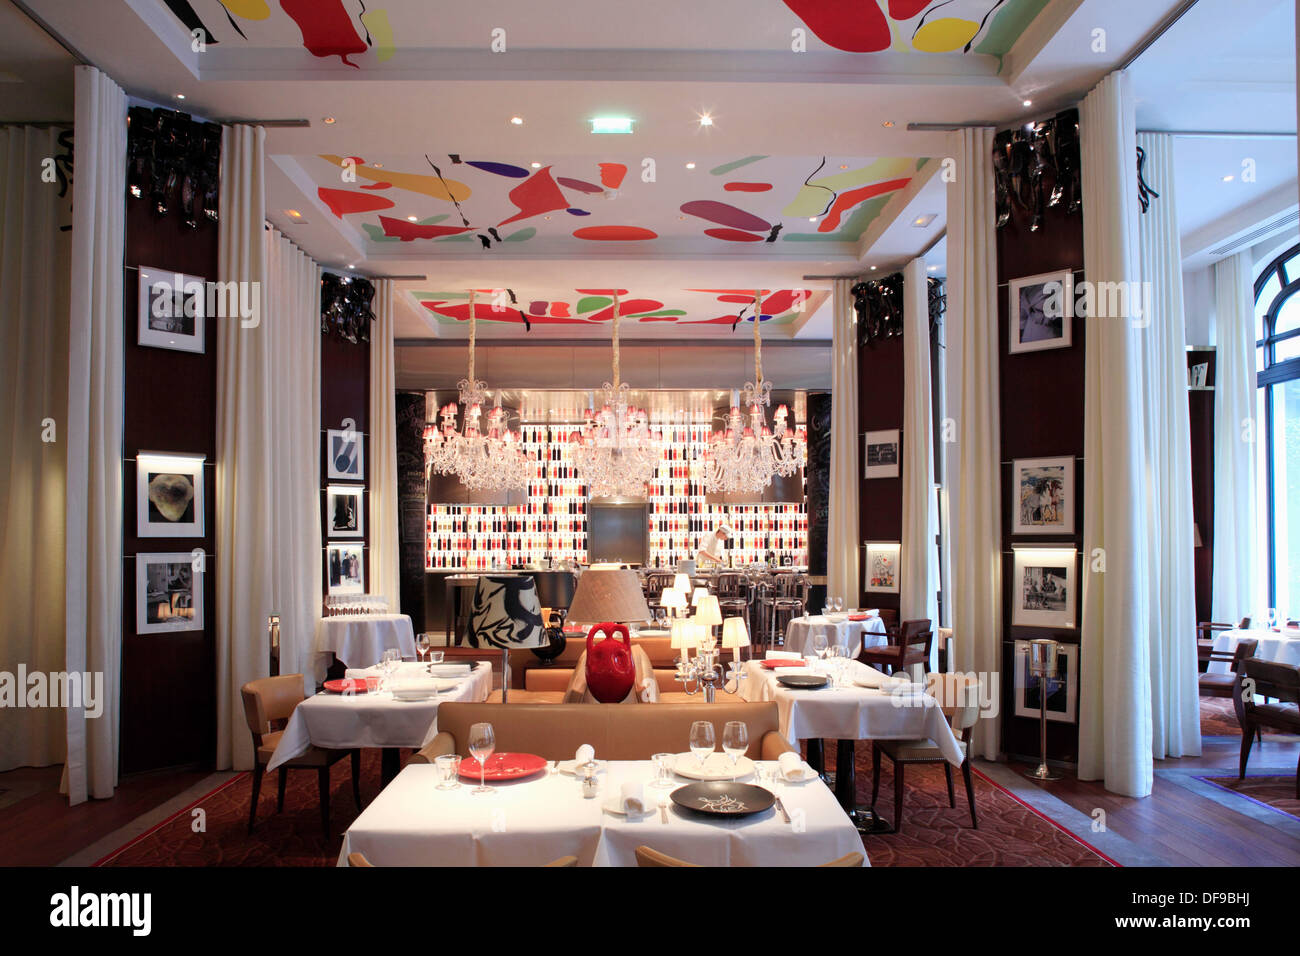 The restaurant la cuisine designed by philippe starck in hotel le stock photo royalty free - La cuisine hotel royal monceau ...